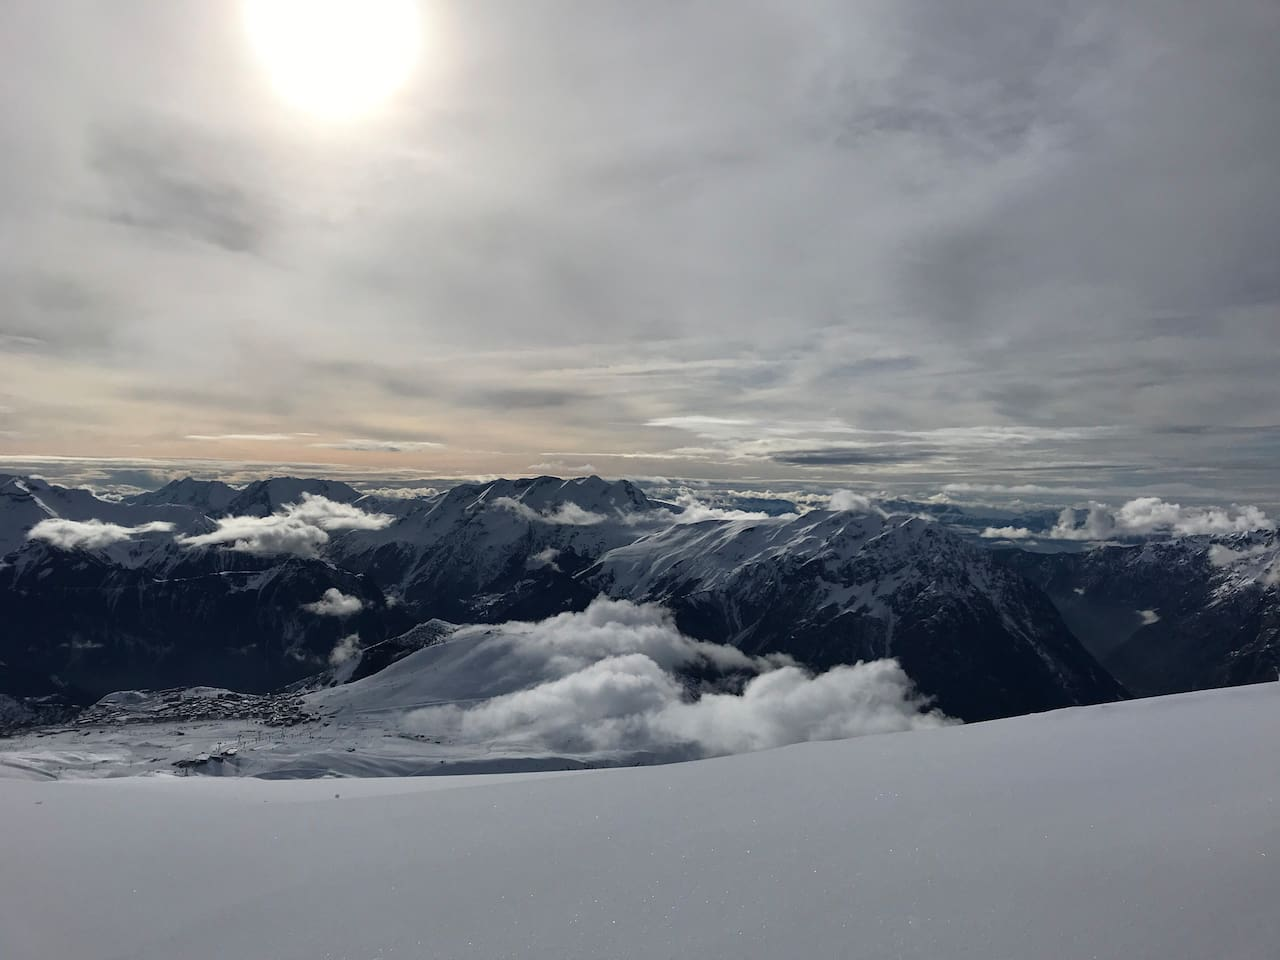 The view from Pic Blanc at 3300m